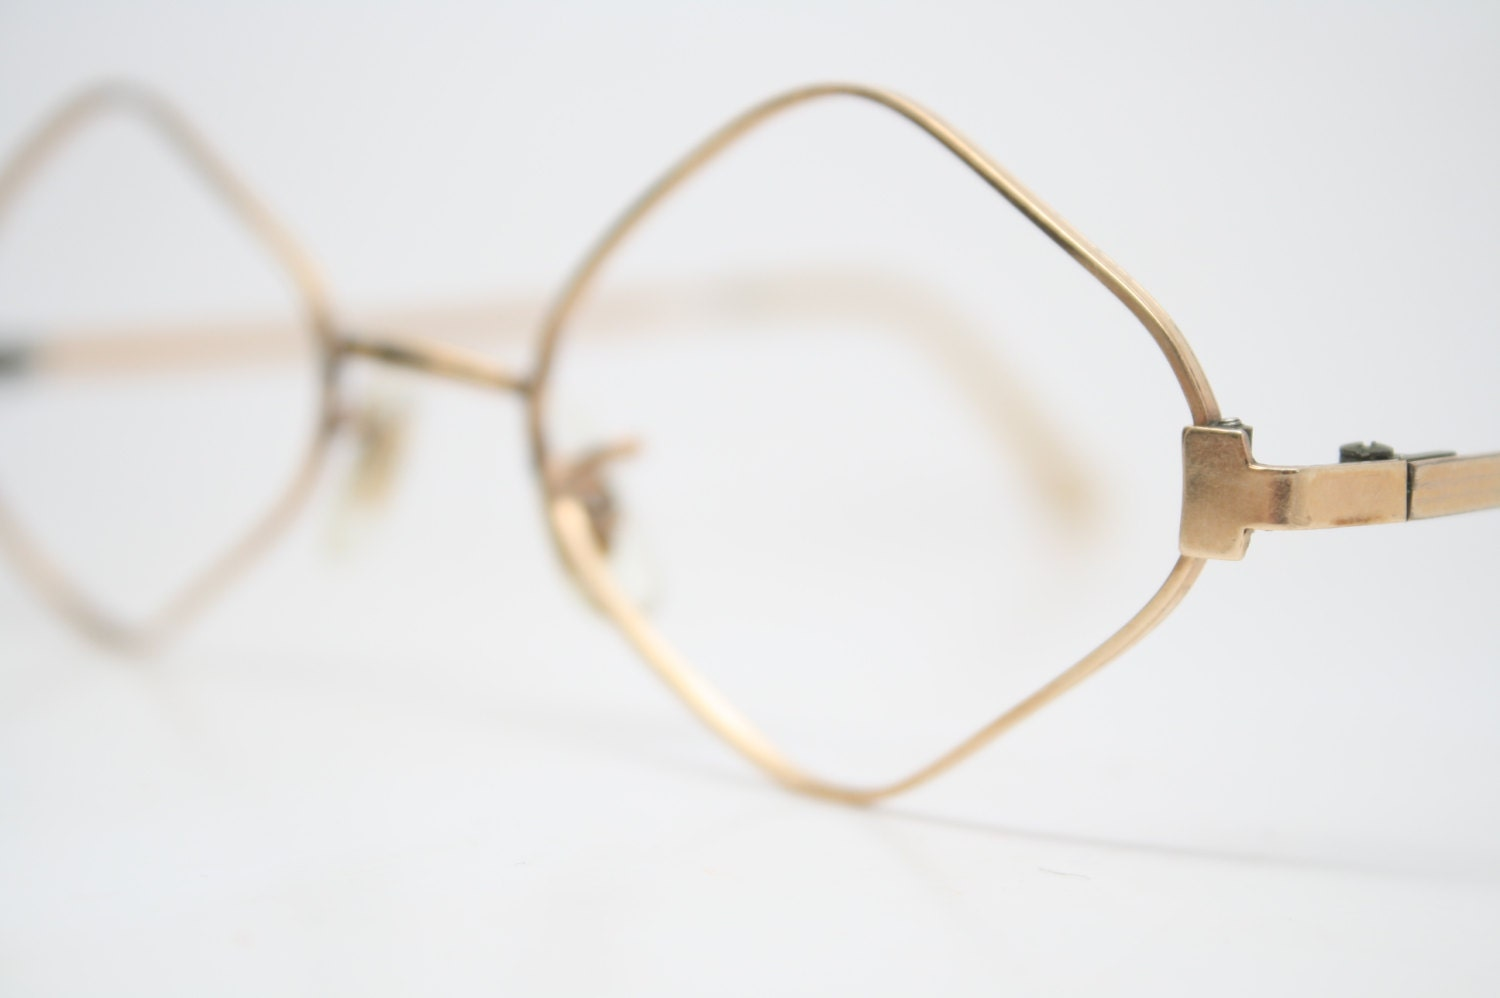 vintage shaped glasses frames 1 20 12k gold vintage